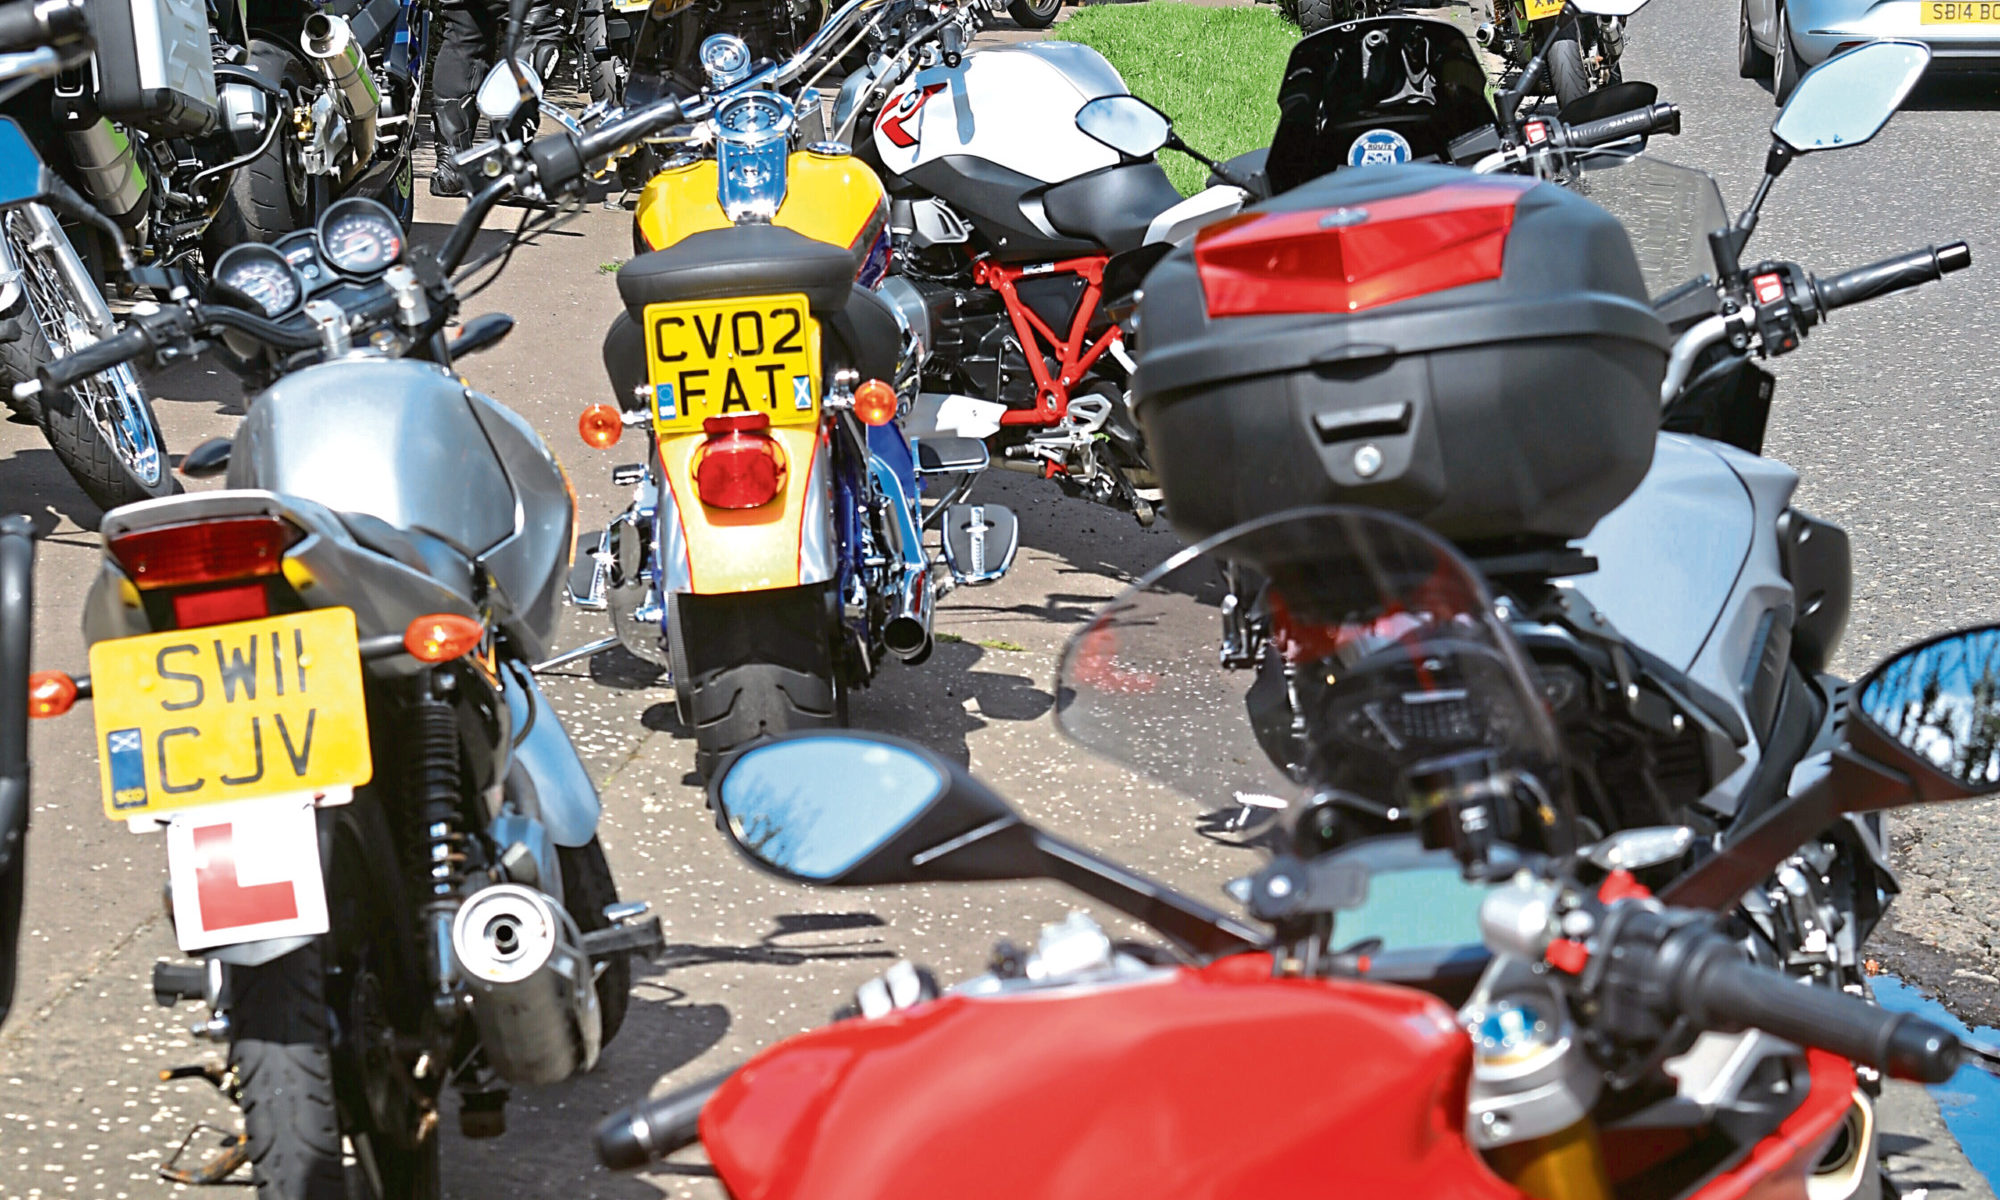 Some of the bikes outside the Crematorium in Dundee.